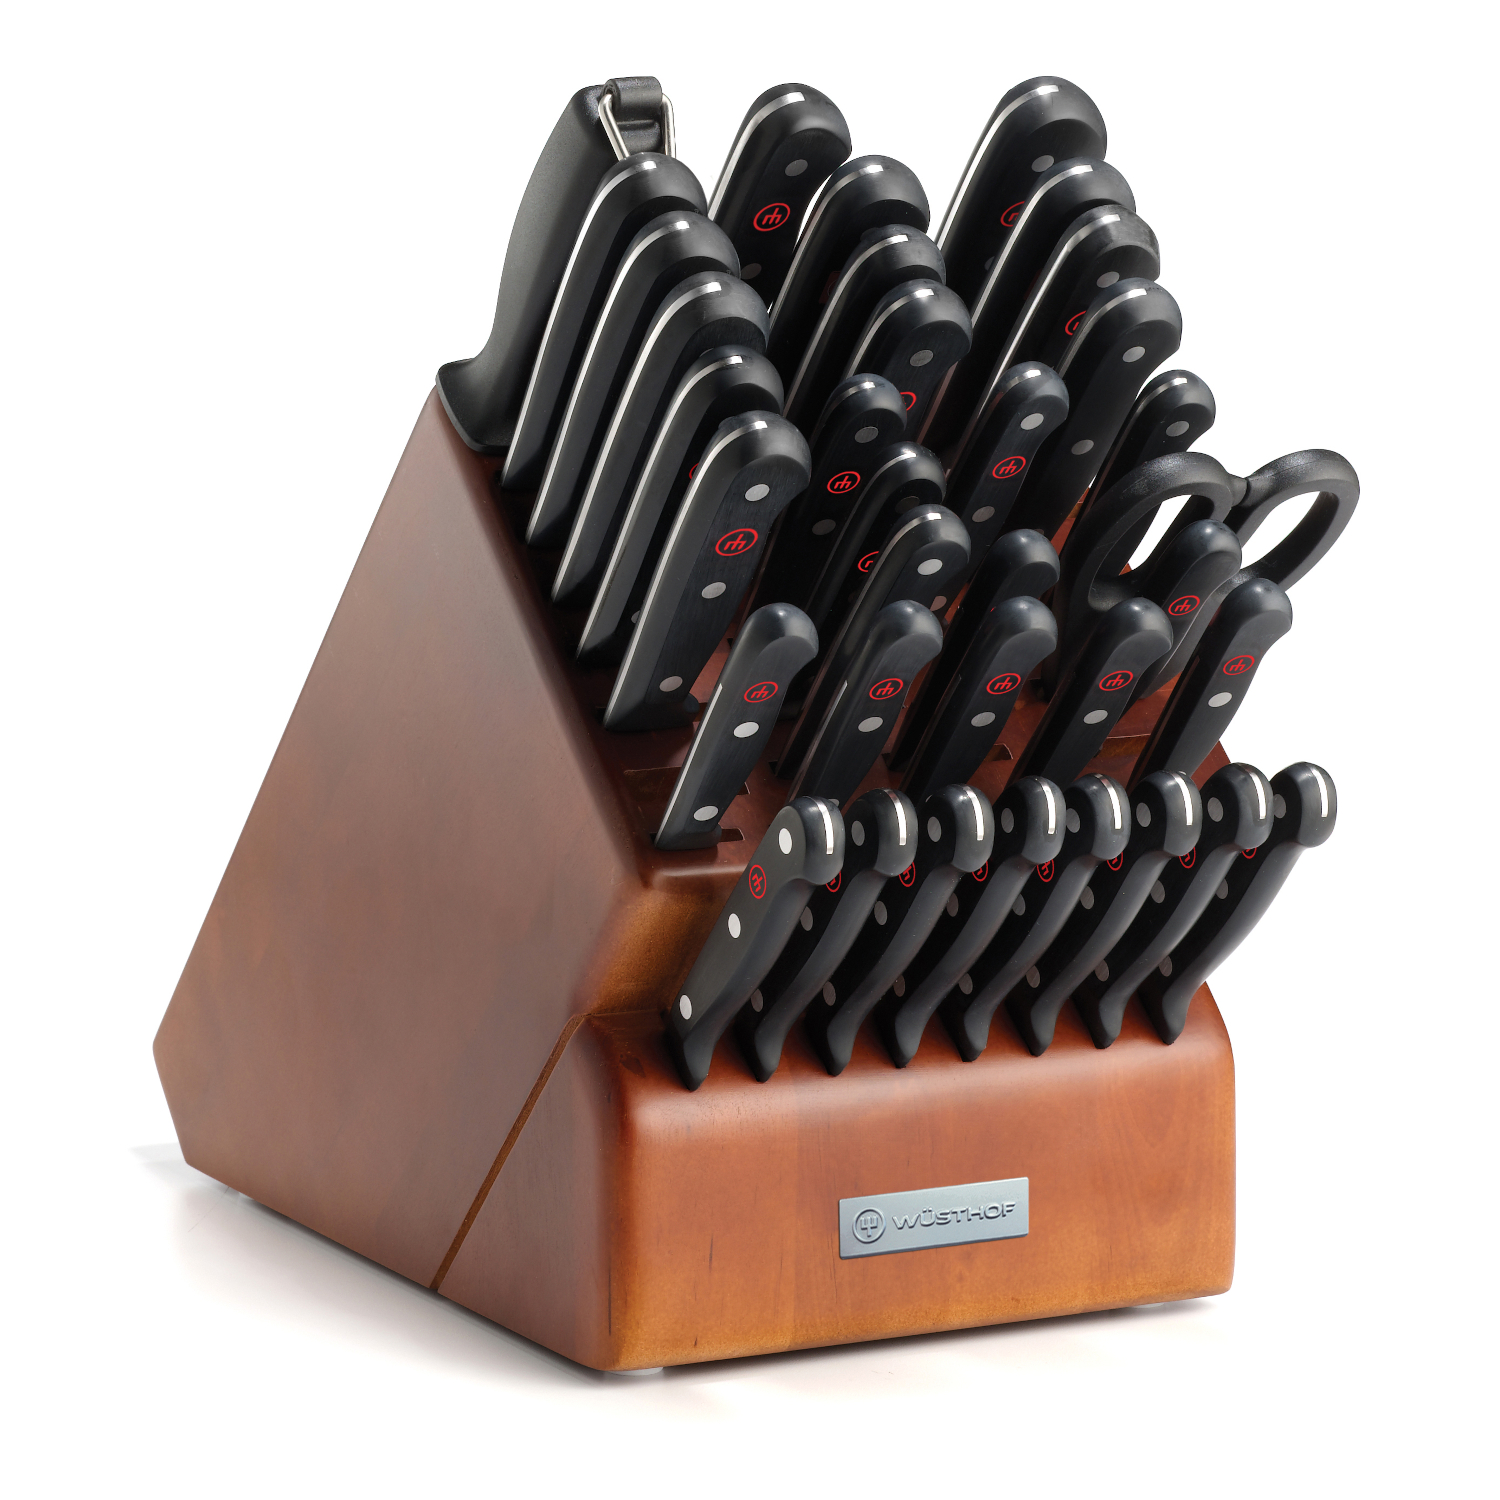 Wusthof Gourmet High Carbon Steel 36 Piece Knife and Cherry Wood Block Set